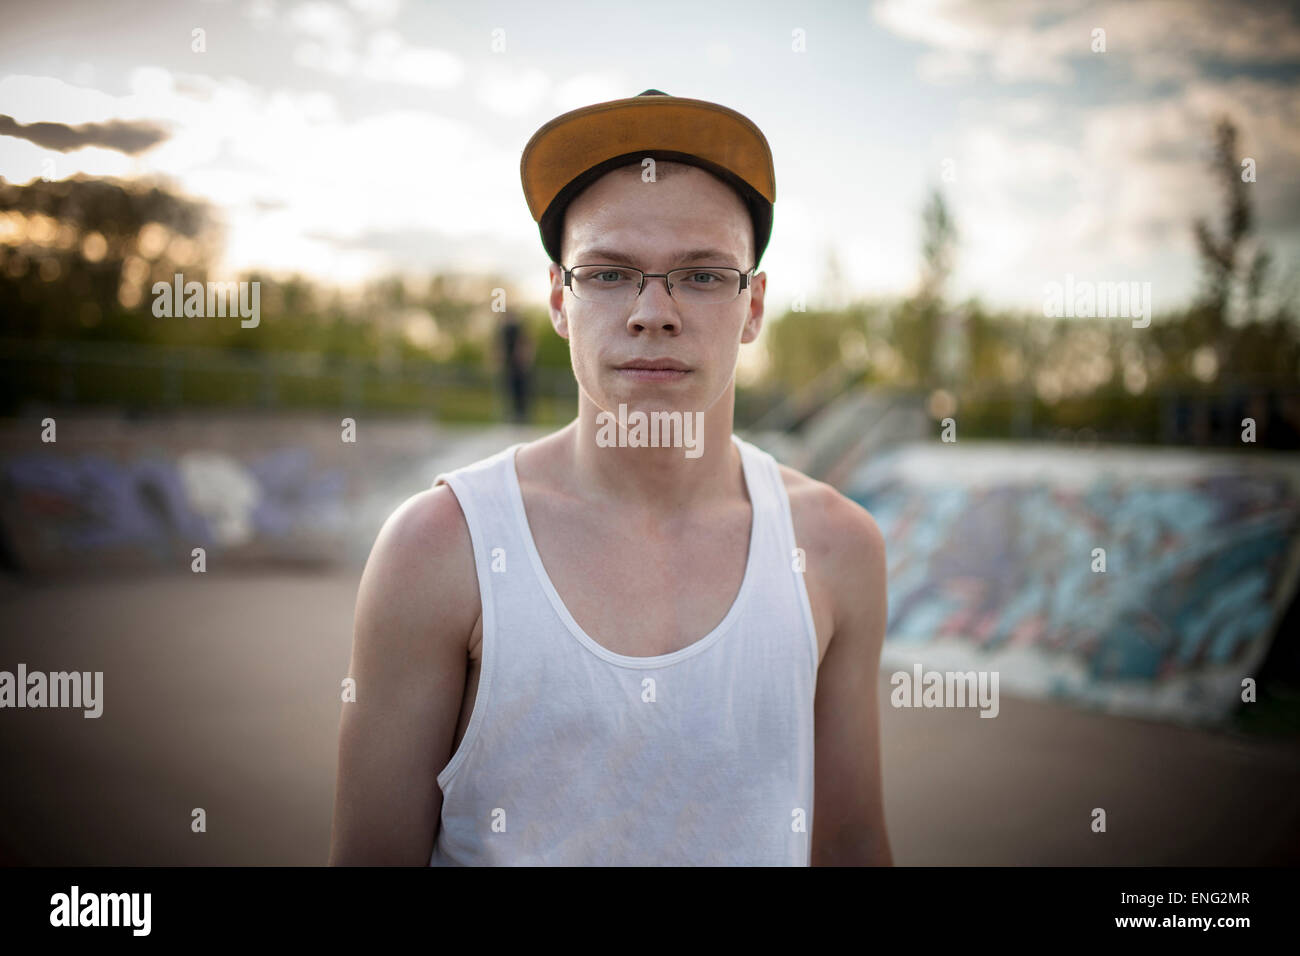 Caucasian man standing at skate park Photo Stock